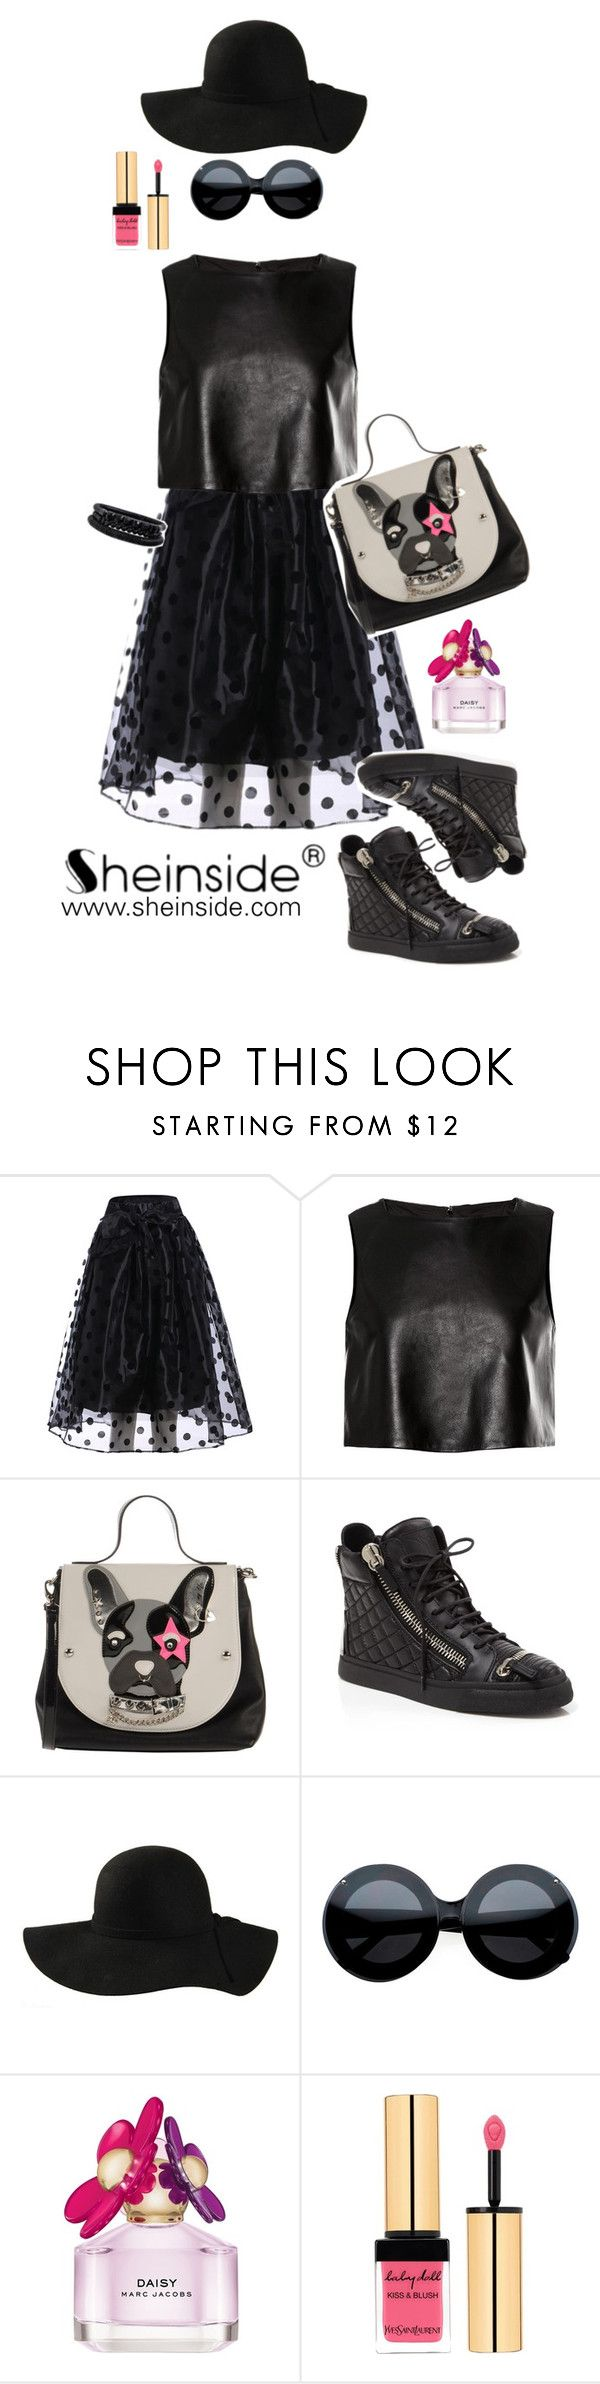 """""""City Chic Style with SheInside"""" by mara-petcana ❤ liked on Polyvore featuring TIBI, TUA by Braccialini, Giuseppe Zanotti, Marc Jacobs, Yves Saint Laurent, Spring Street and Sheinside"""